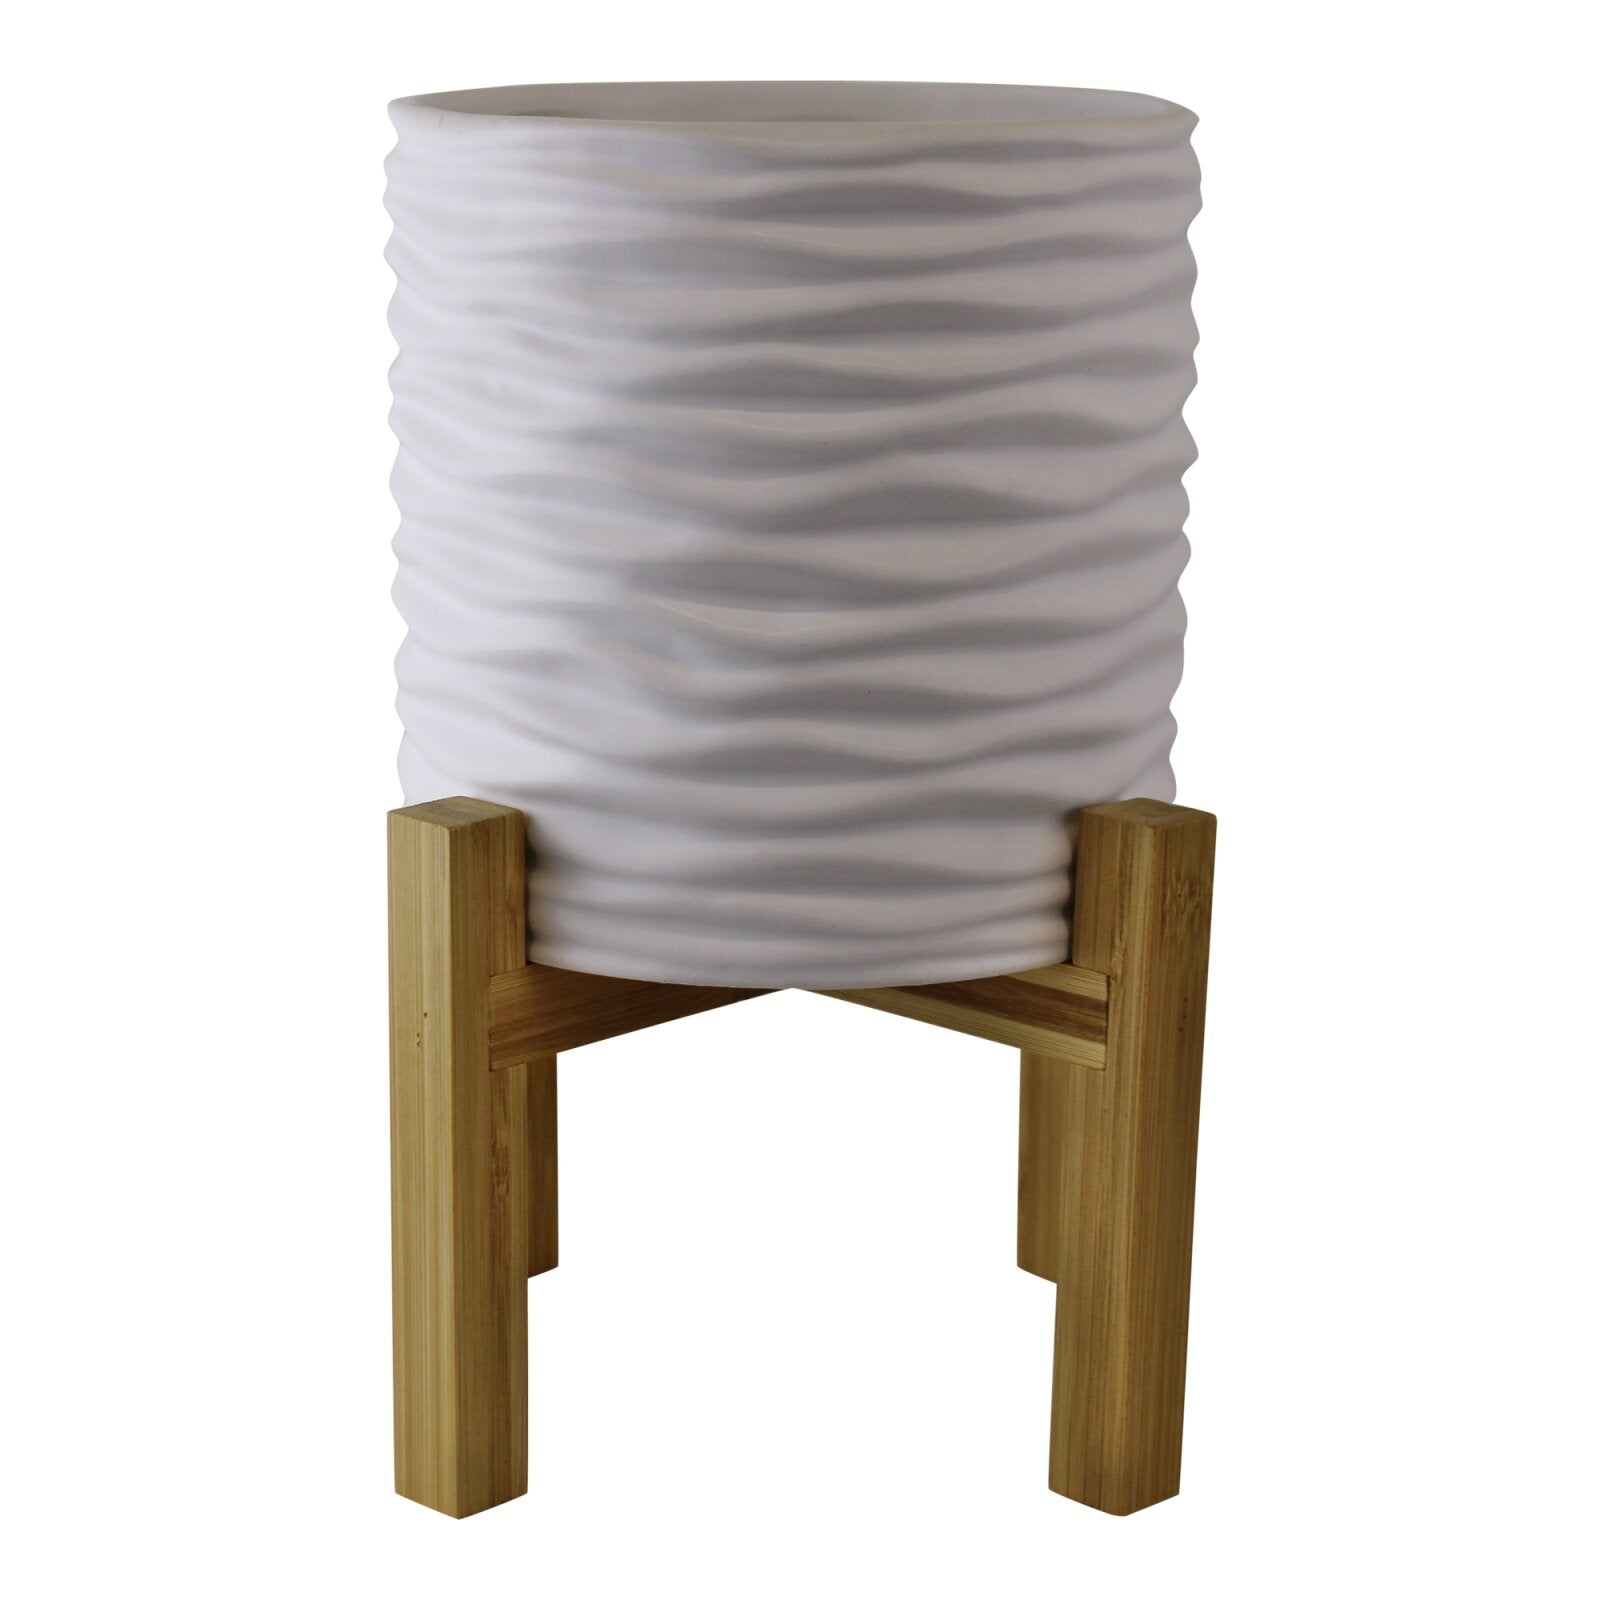 Small White Stoneware Planter On Wooden Stand, Lawn & Garden by Low Cost Gifts